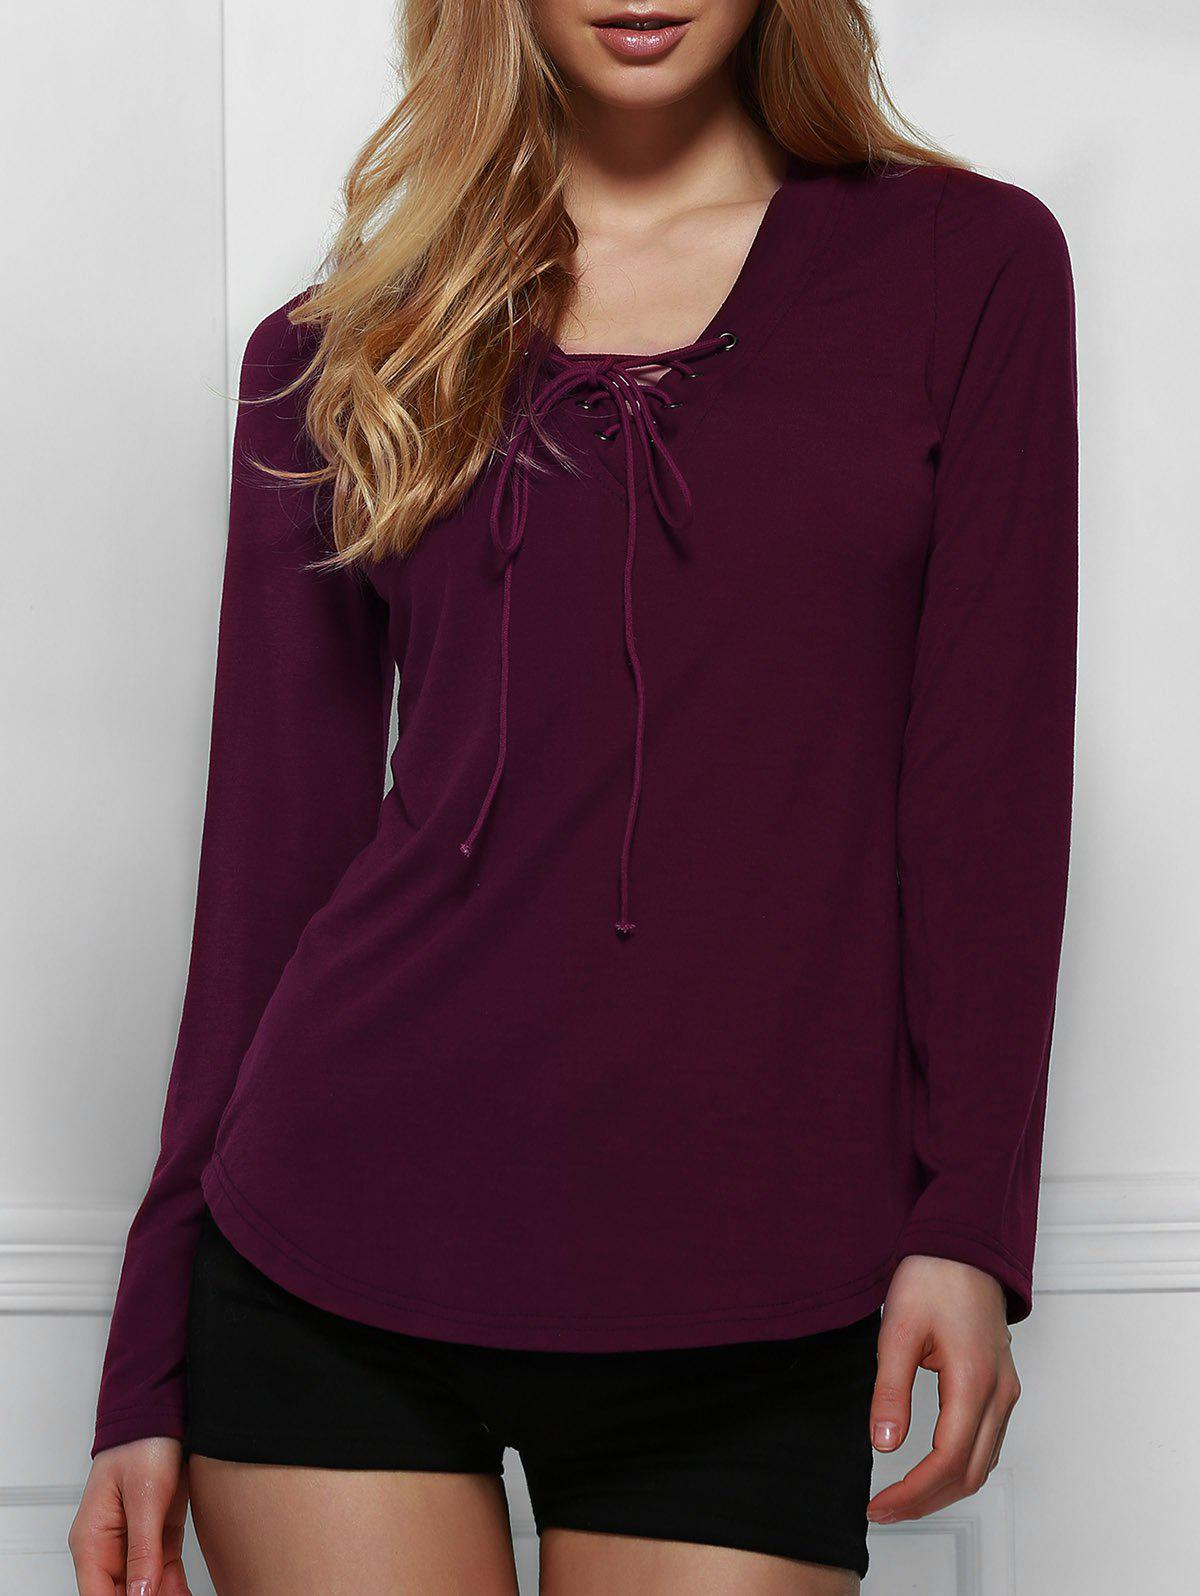 Chic Long Sleeve V Neck Lace-Up Women's T-Shirt - WINE RED S